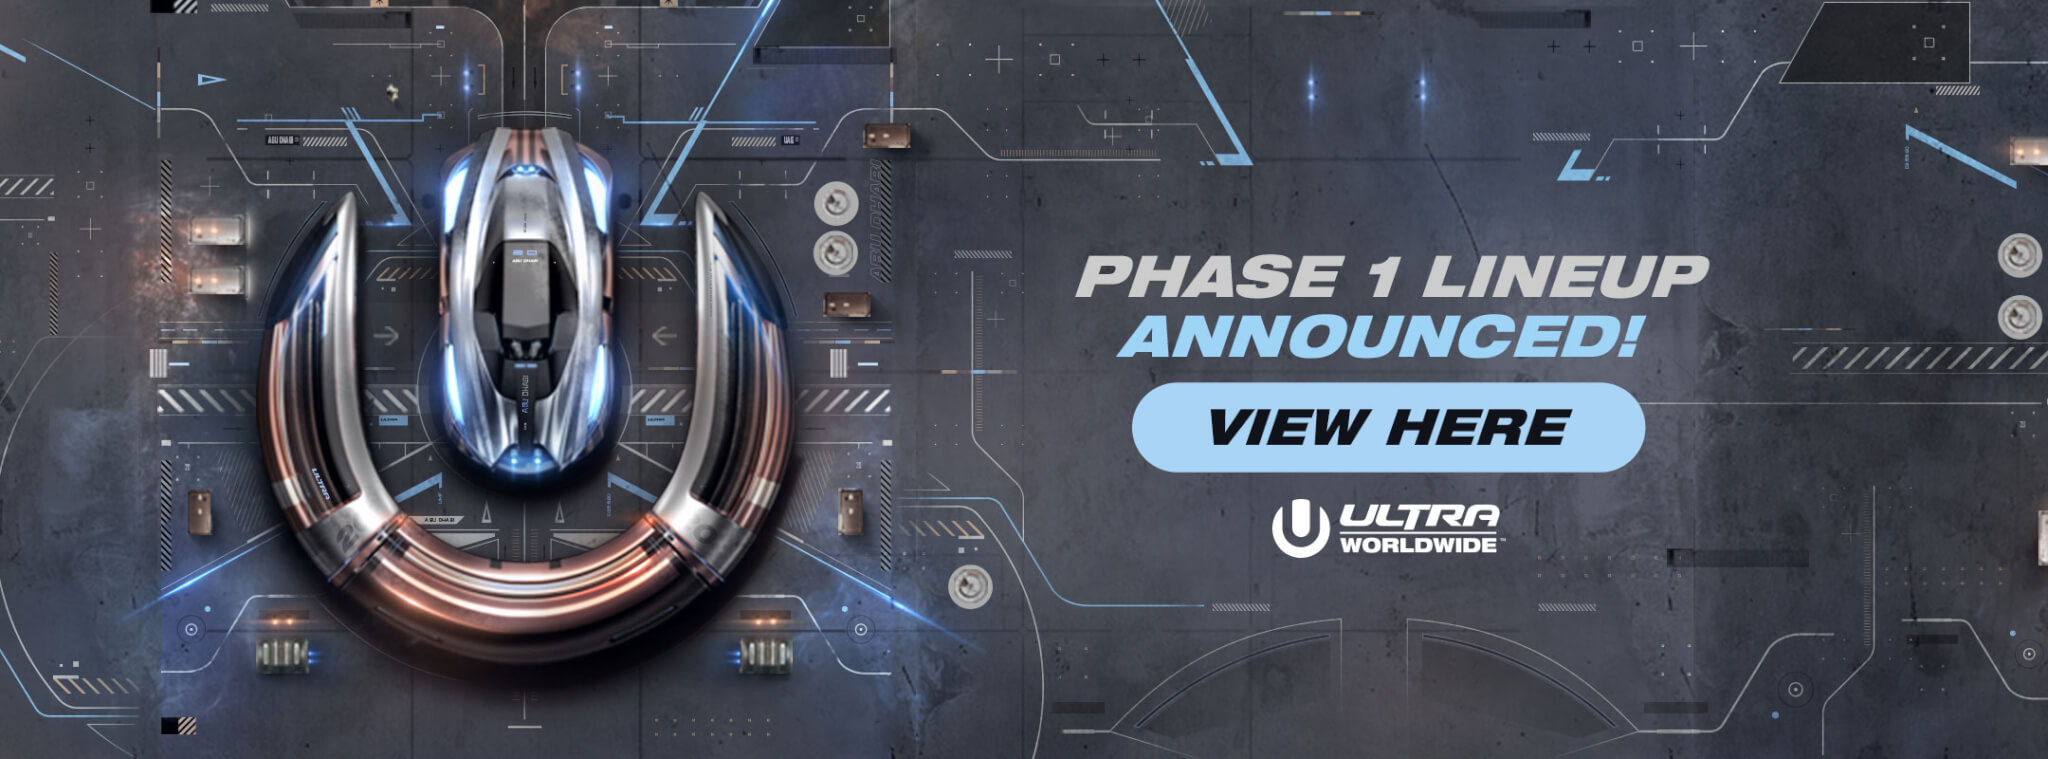 View the Ultra Abu Dhabi Phase 1 Lineup